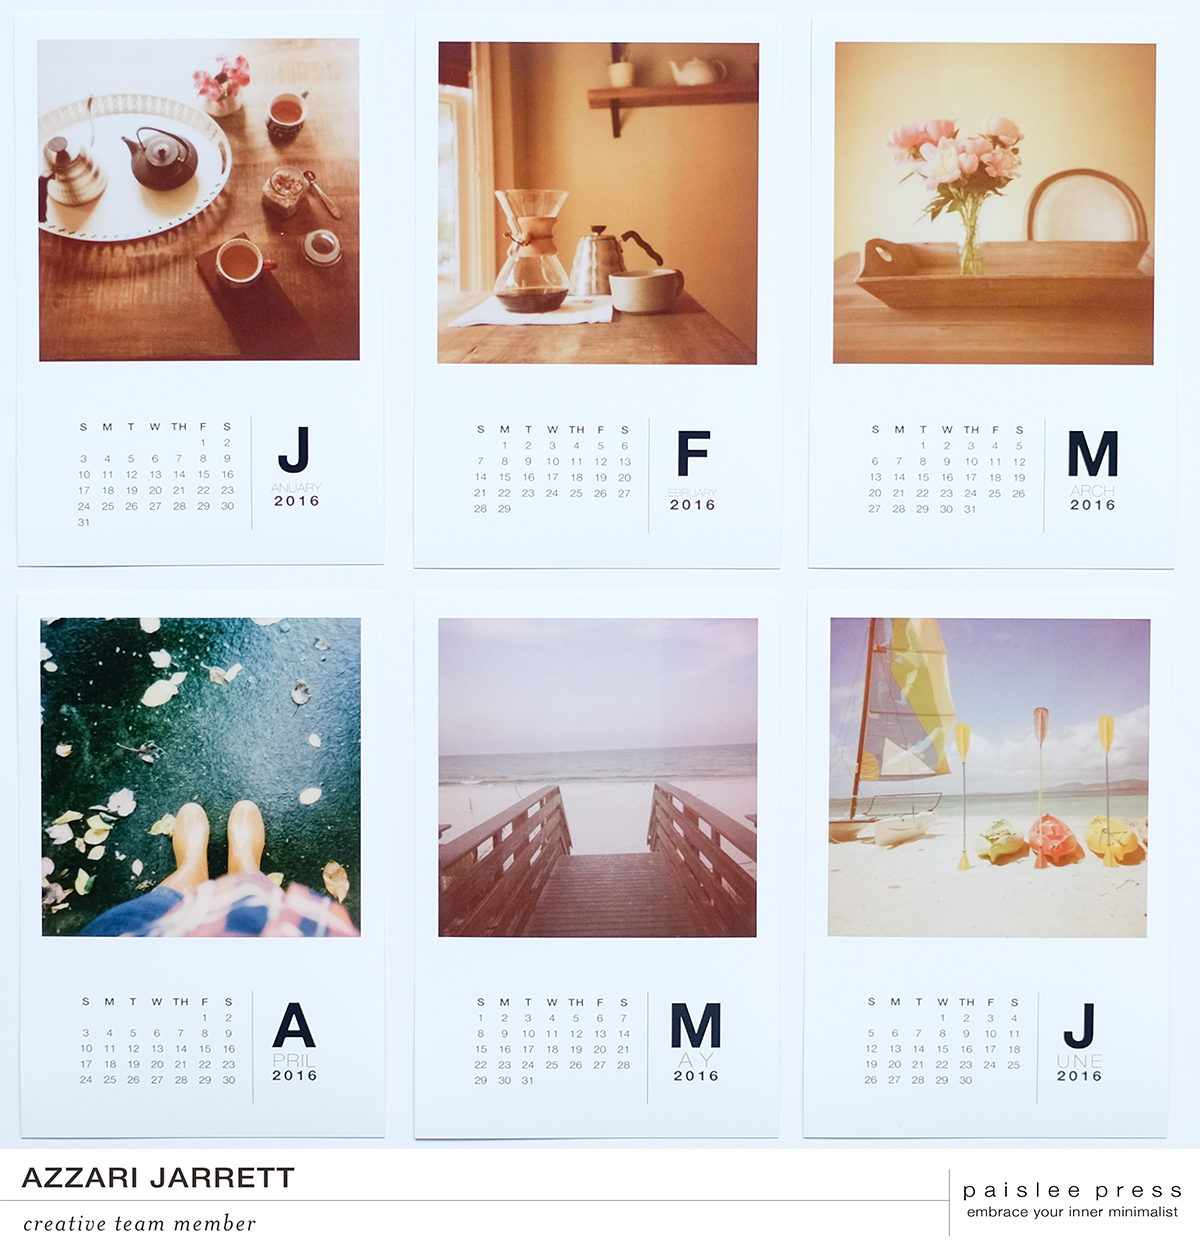 Paislee Press 2016 Calendar Kit | Azzari Jarrett